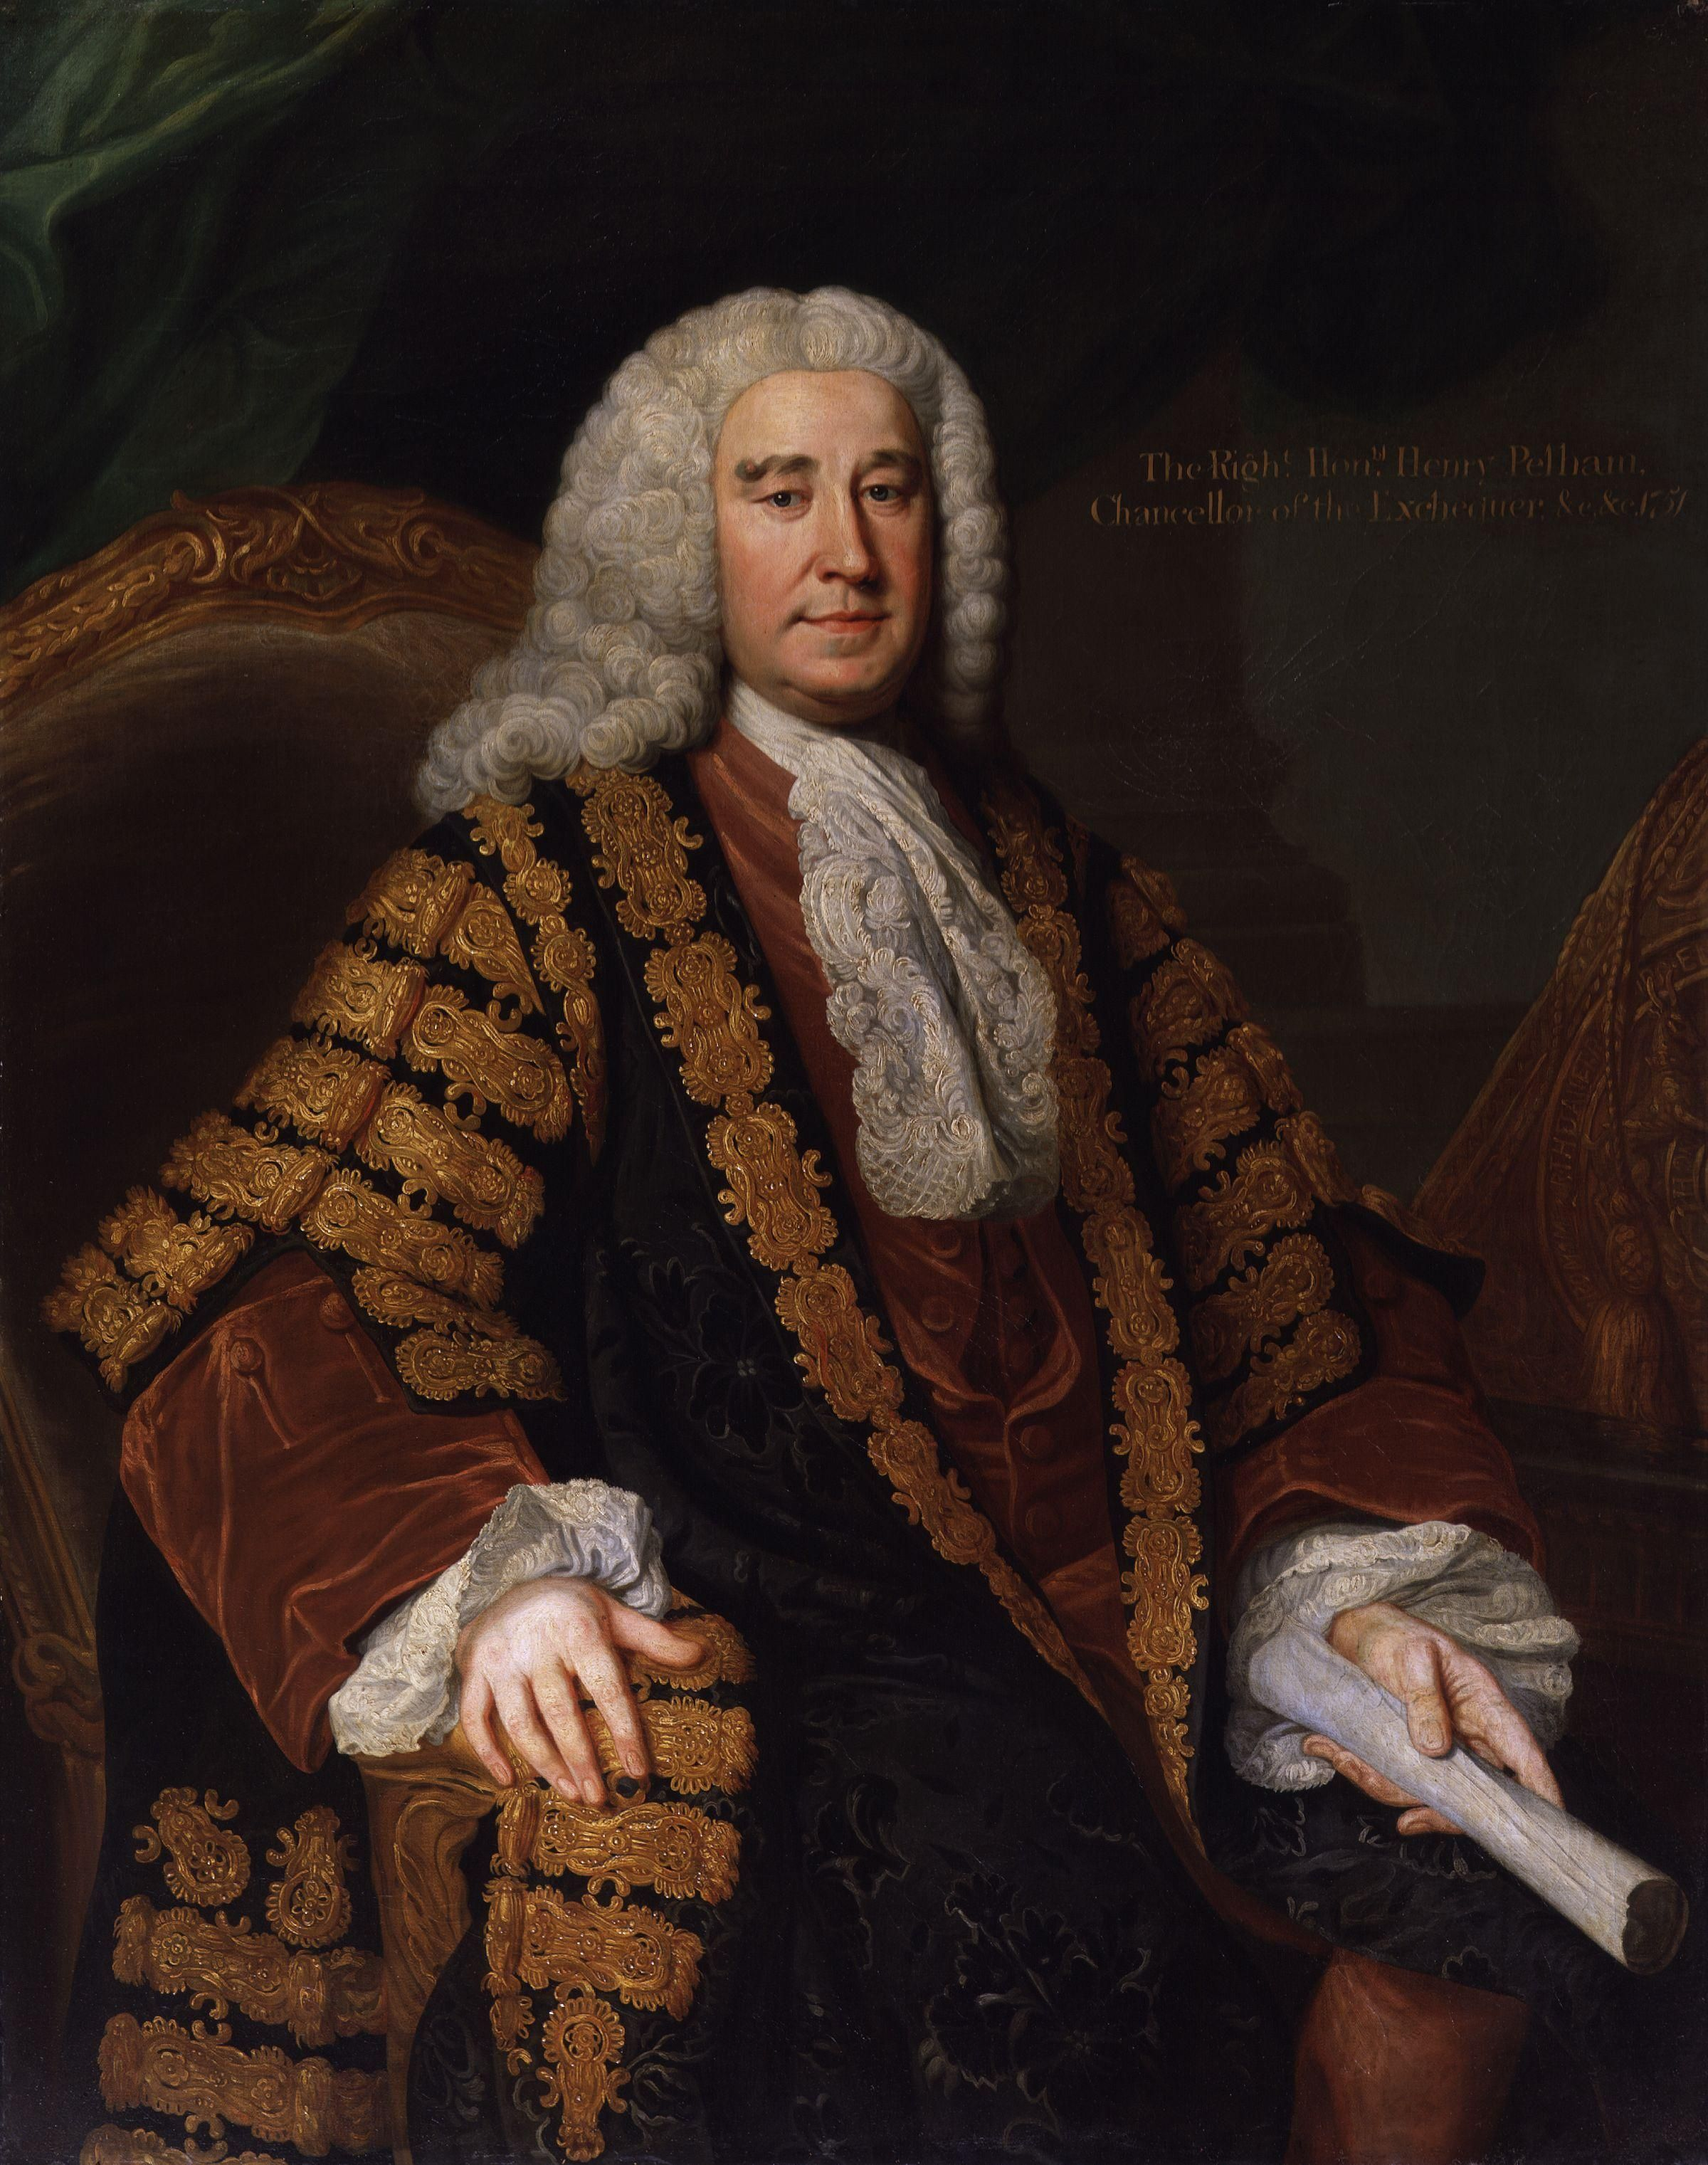 henry pelham 1694 –1754 was a british whig statesman, served as